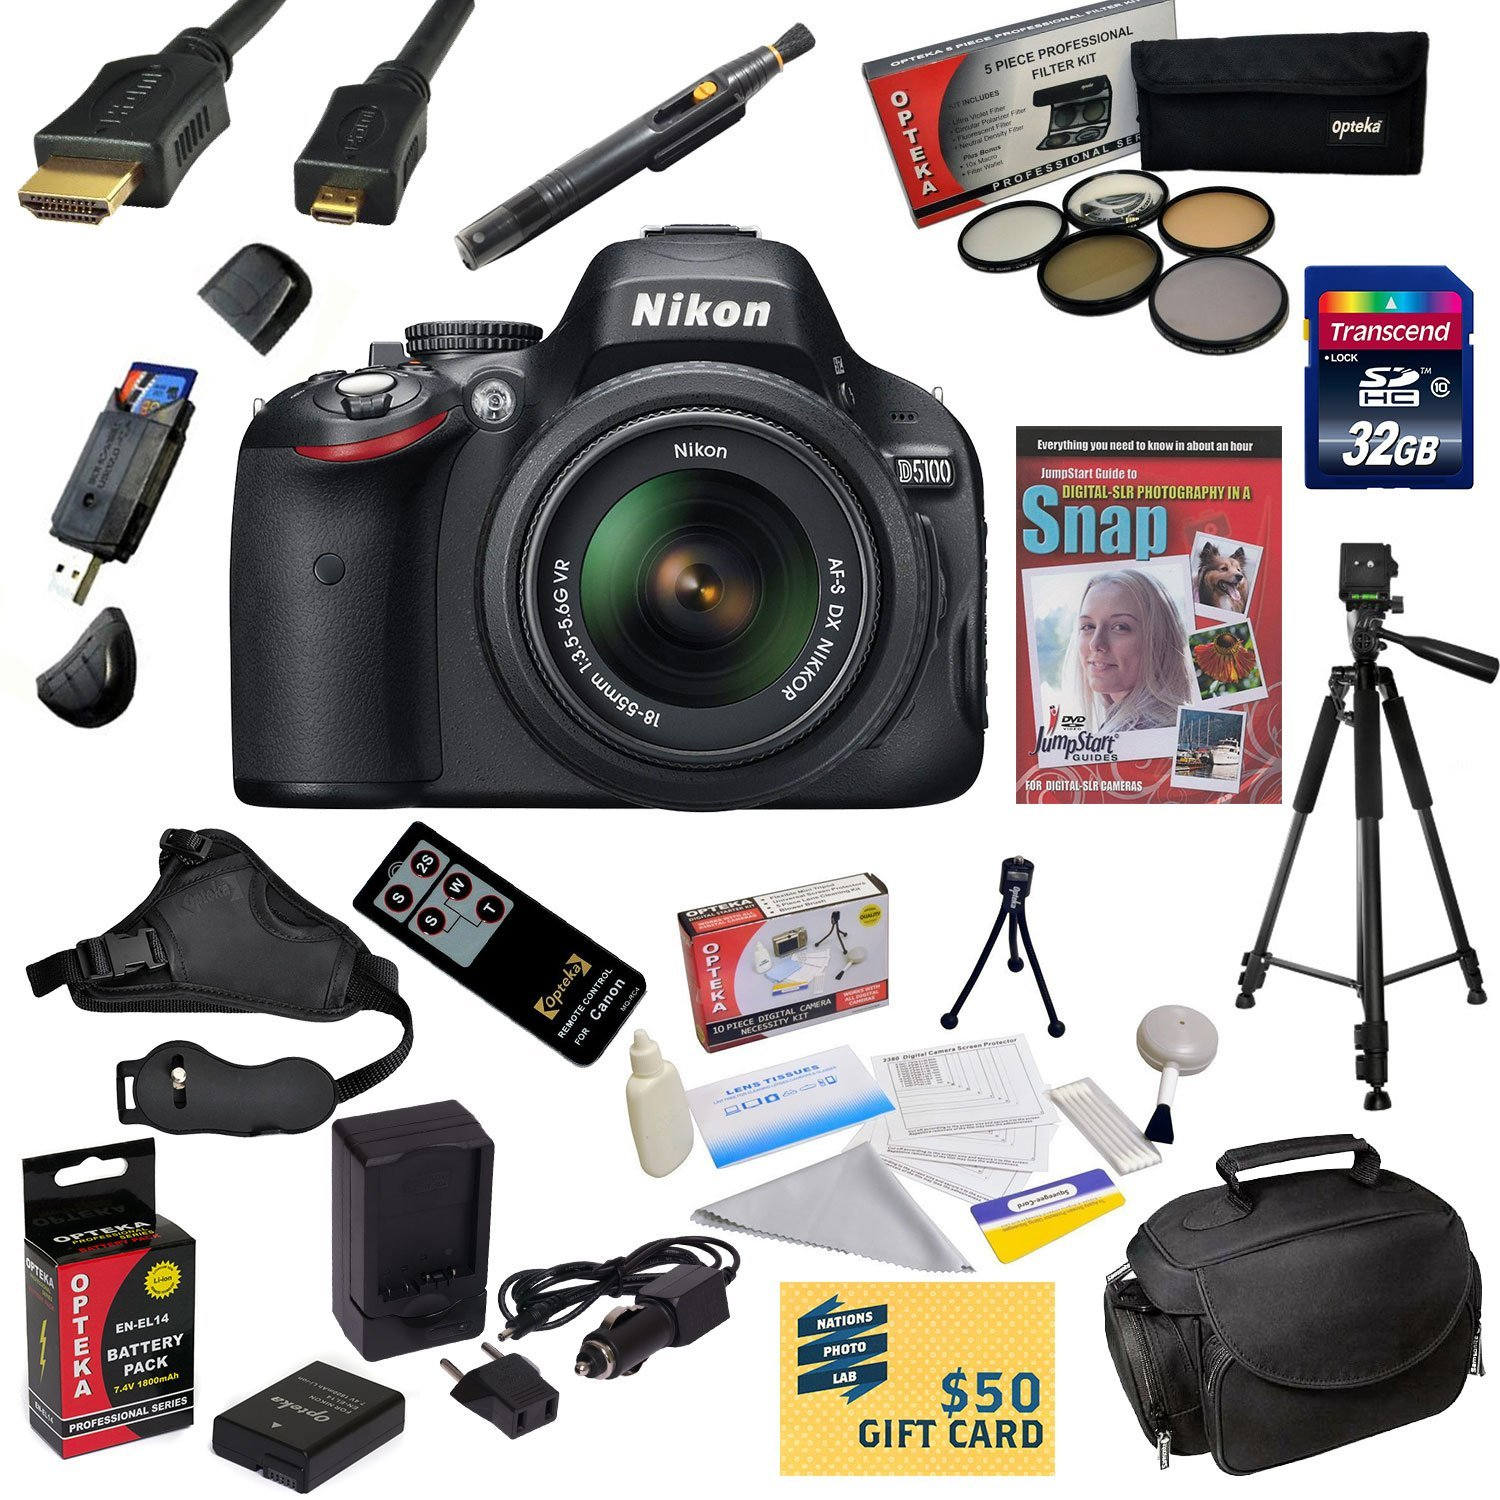 Nikon D5100 Digital SLR Camera with 18-55mm NIKKOR VR Lens 32GB SDHC Card, Reader, Extra Battery, Charger, 5 PC Filter, HDMI Cable, Case, Remote Control, Tripod, Grip Strap, DVD, $50 Gift Card, More